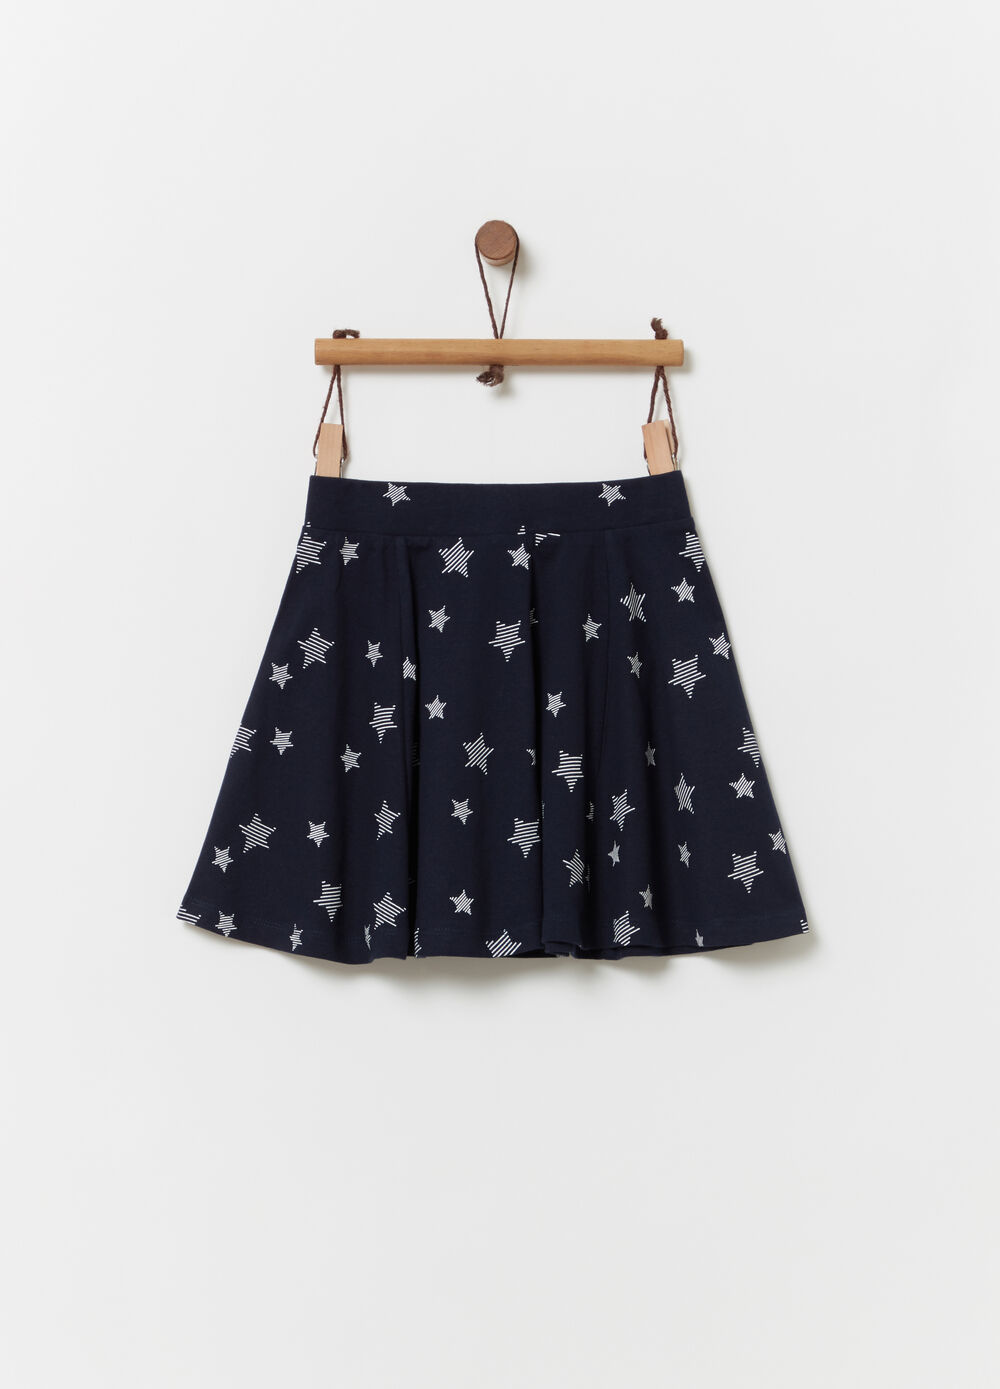 Skater skirt with all-over stars print